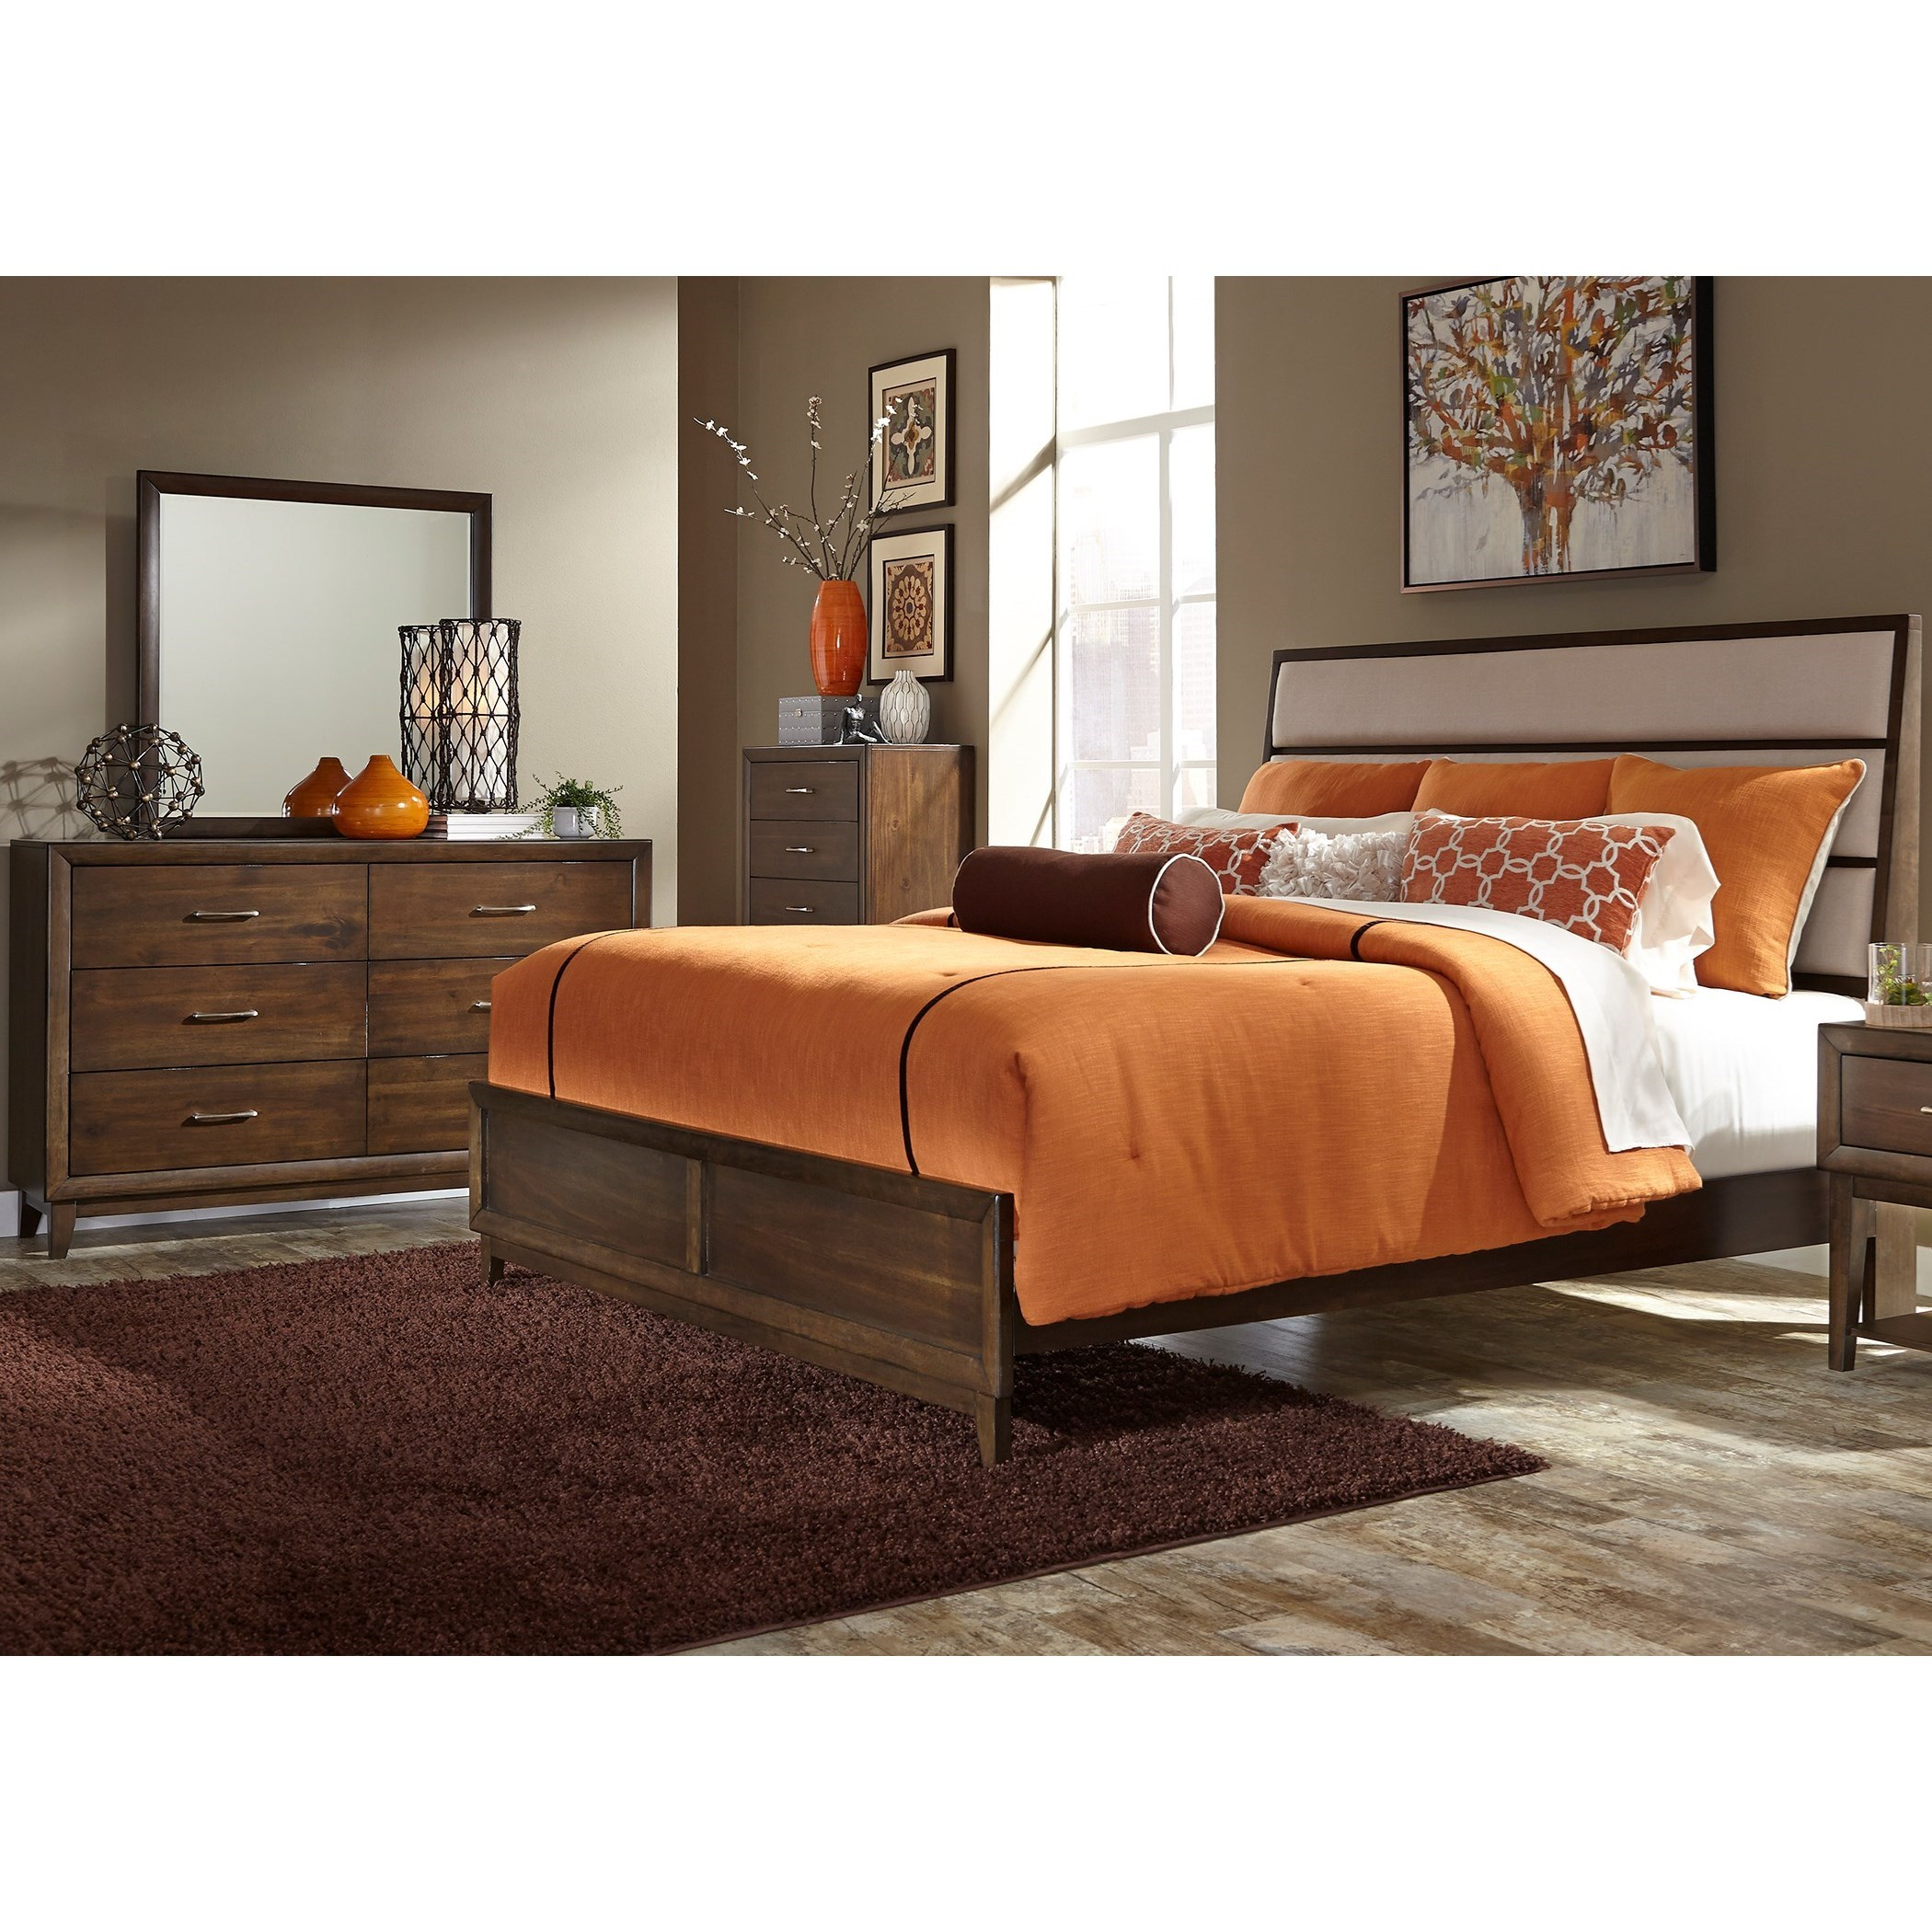 Liberty Furniture Hudson Square Bedroom King Bedroom Group - Item Number: 365-BR-KPBDMC